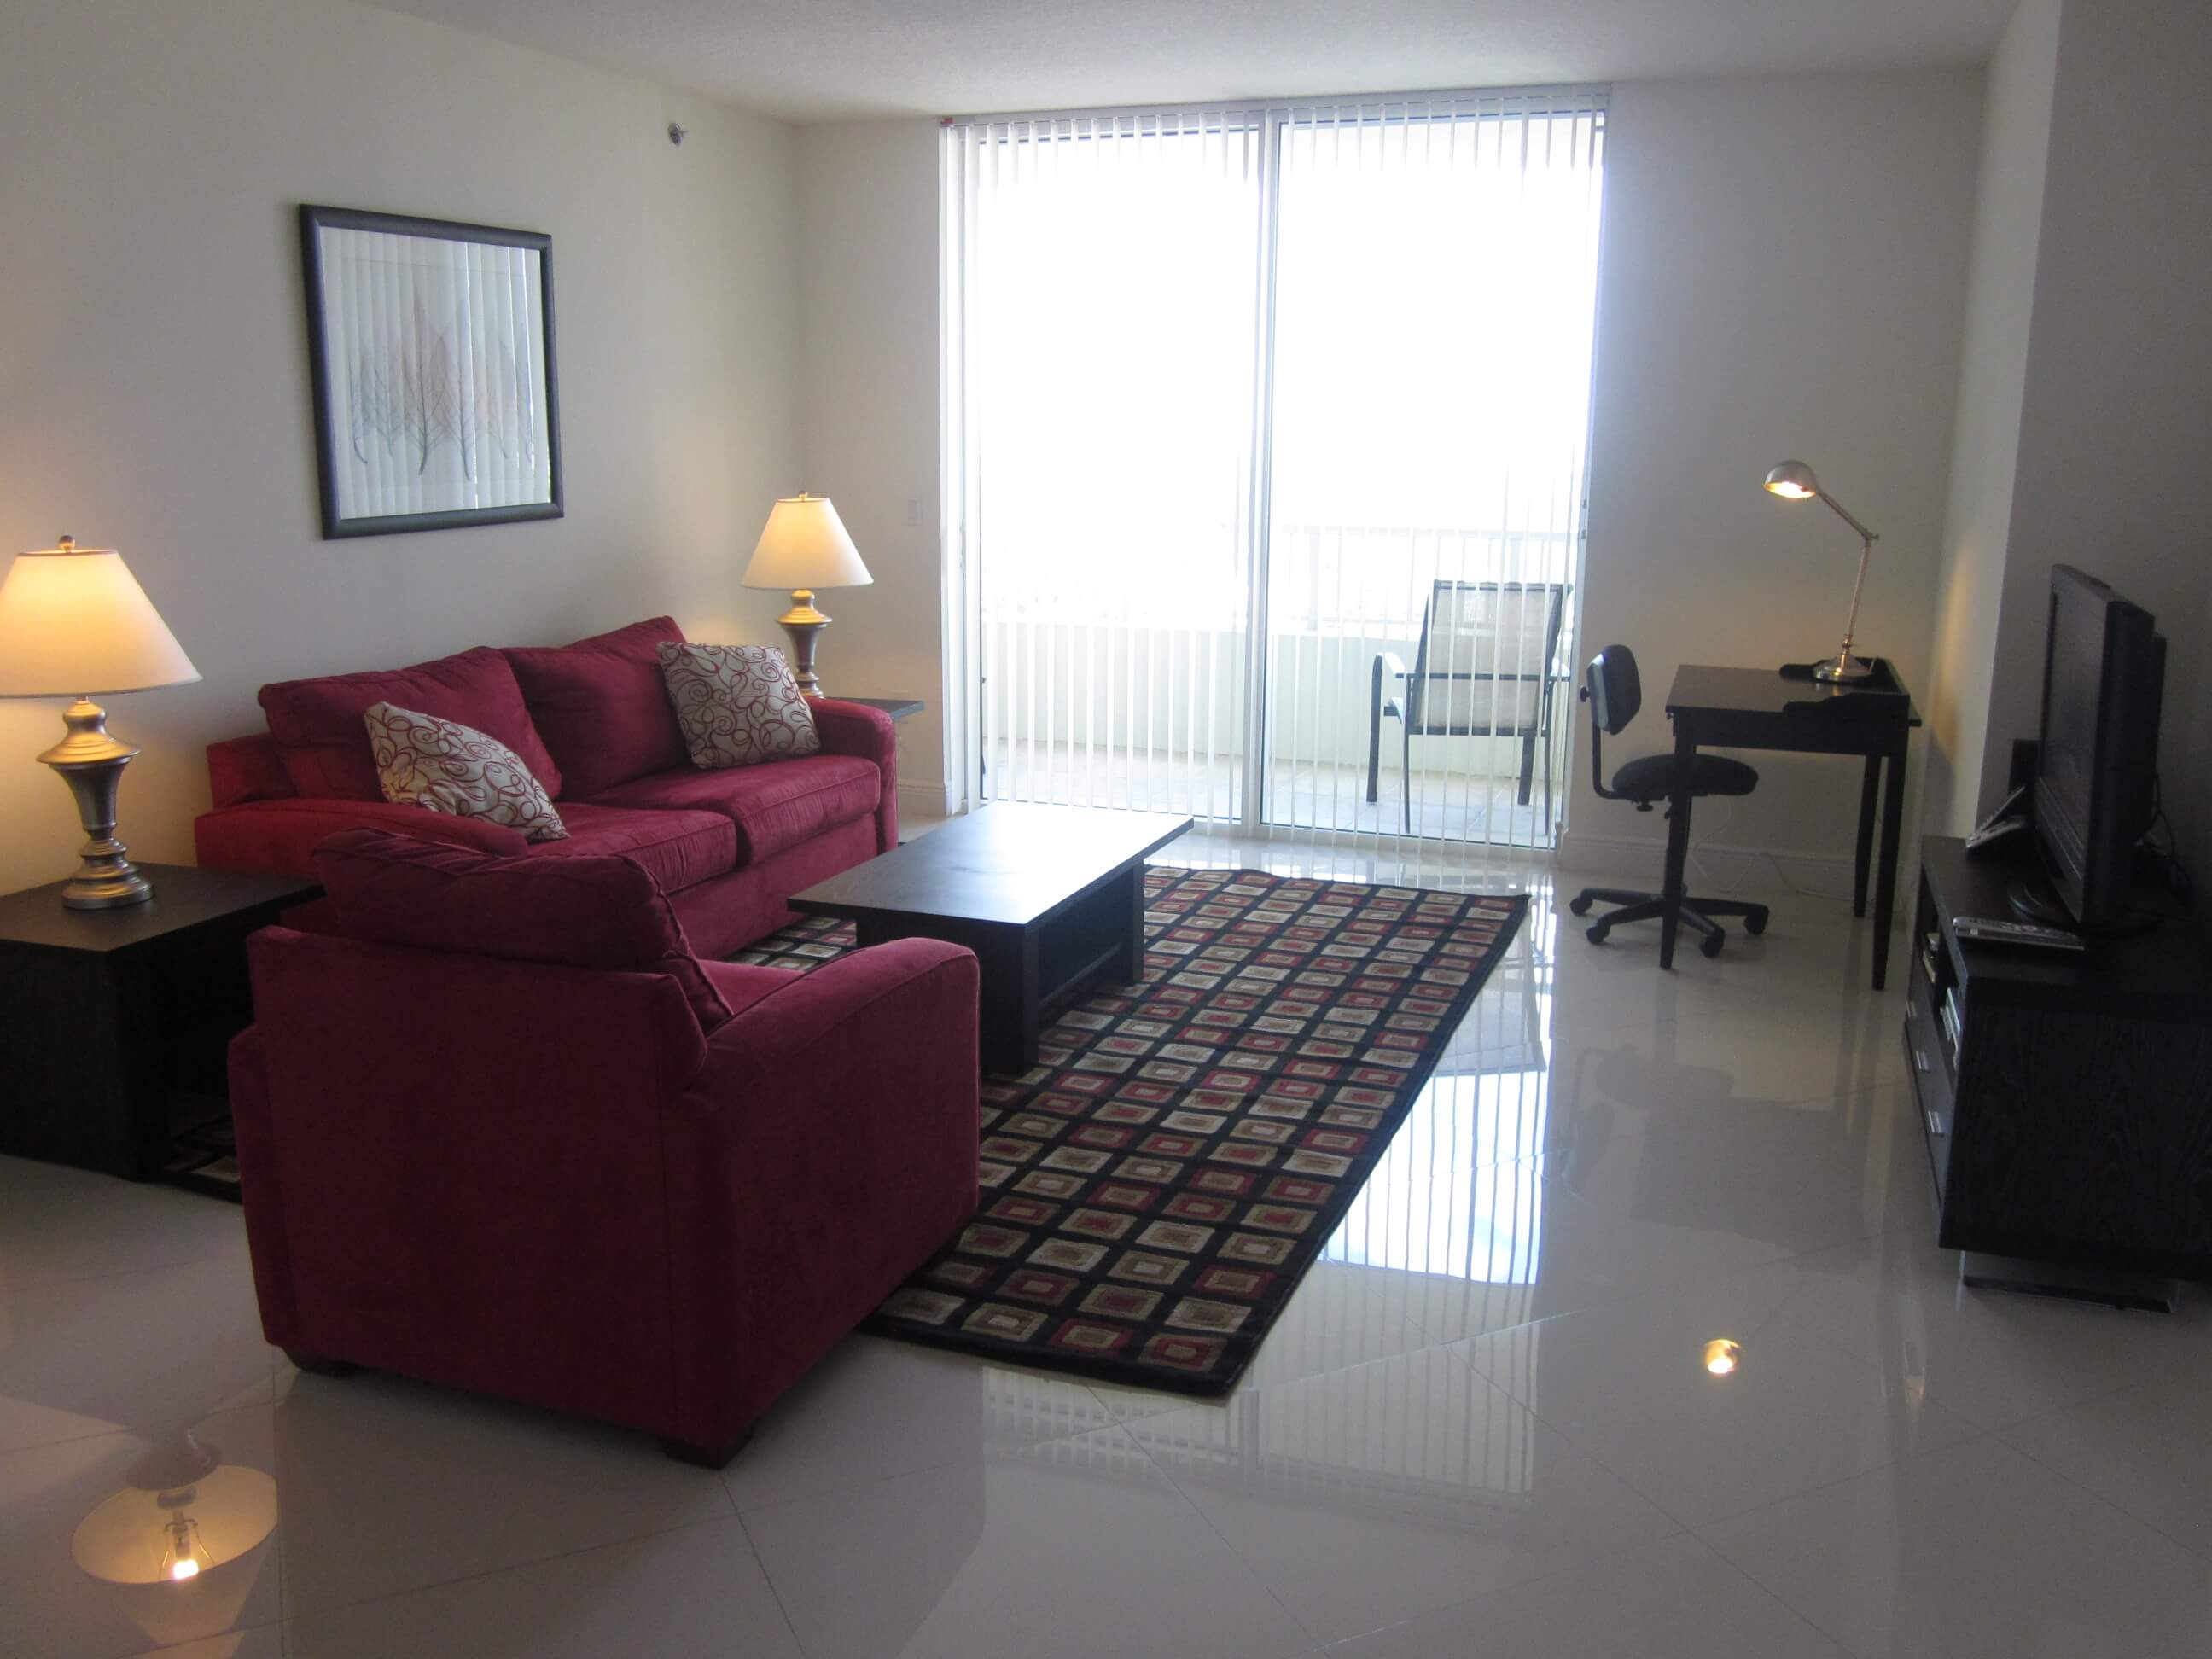 image 4 furnished 2 bedroom Apartment for rent in Miami Lakes, Miami Area